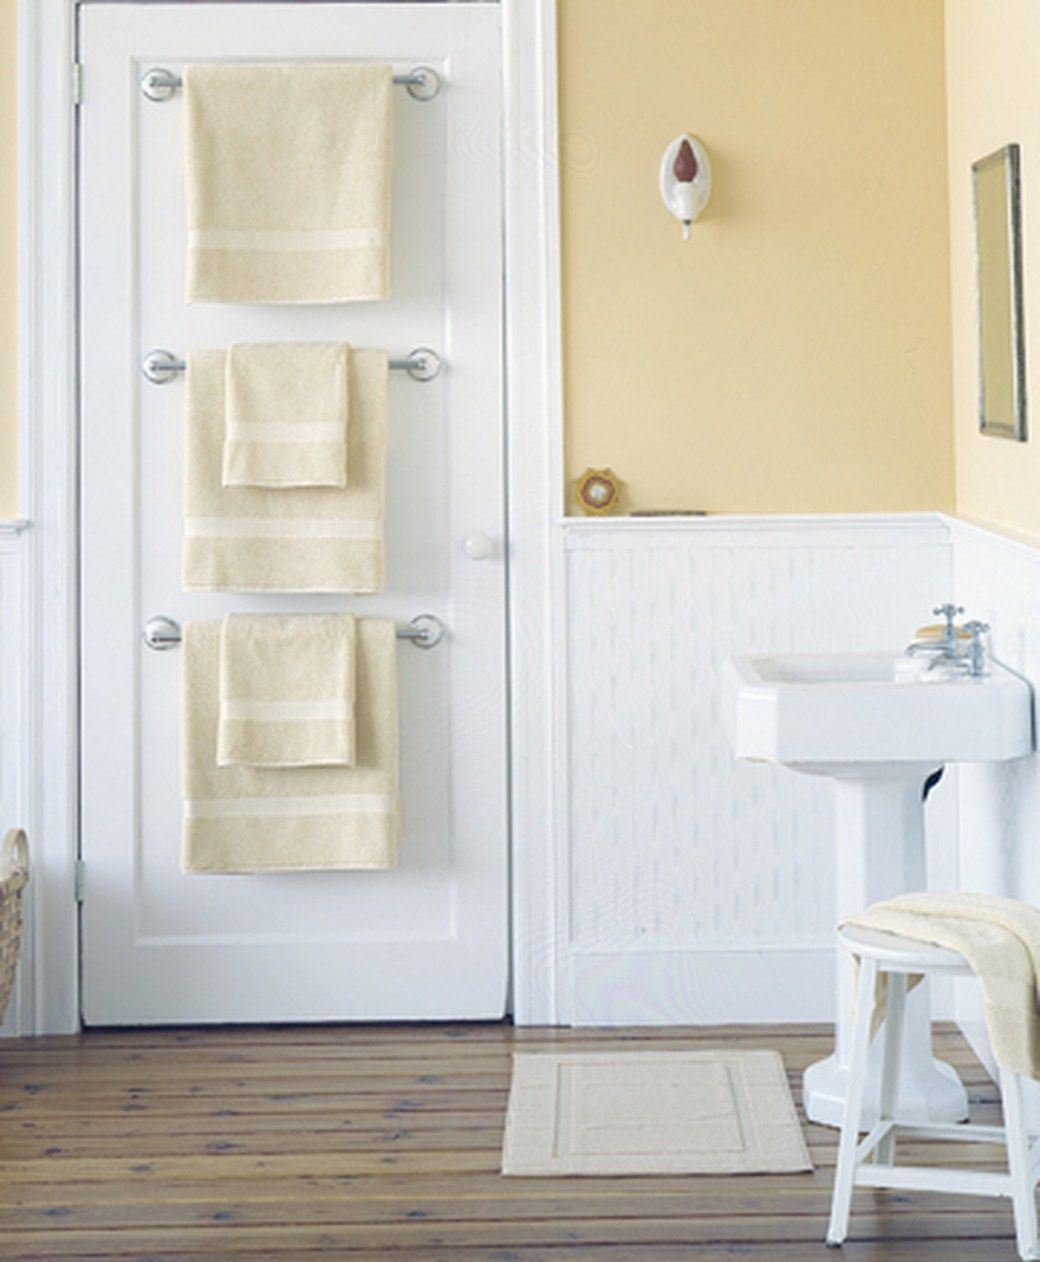 12 Brilliant Storage Ideas To Make The Most Of Your Small Bathroom ...